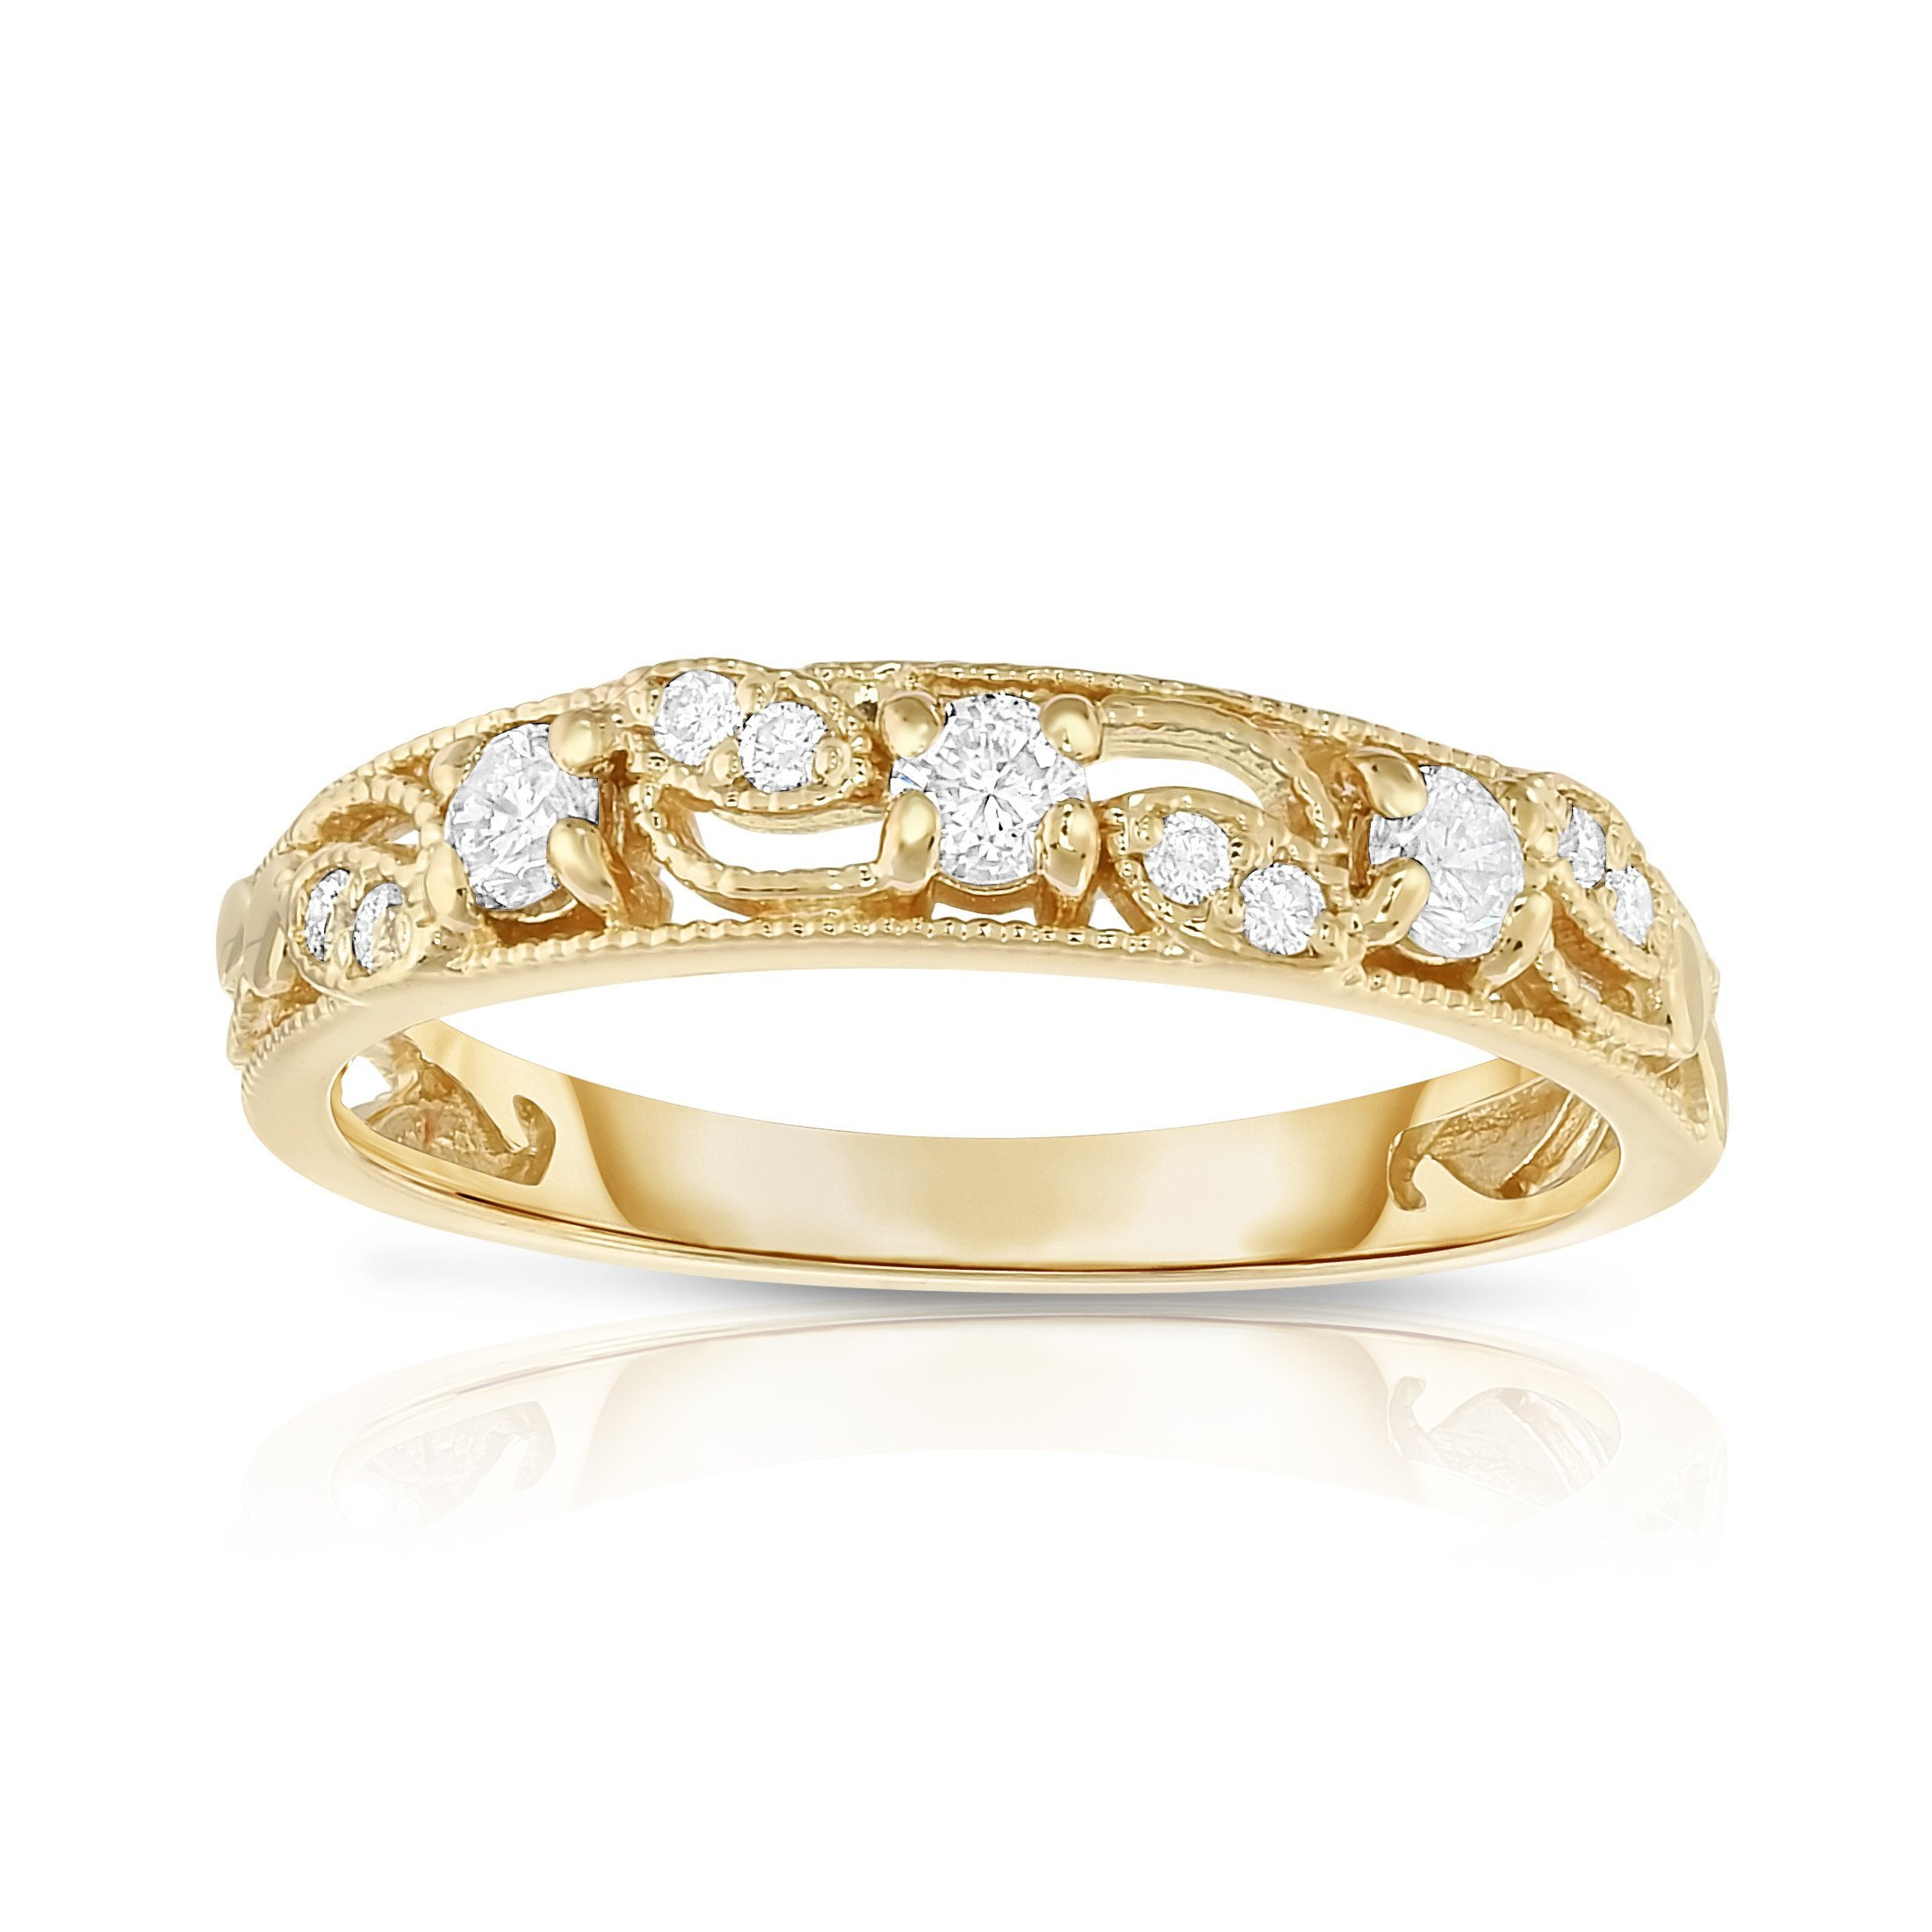 Noray Designs 14K Yellow Gold 1/4 Ct, G-H, SI2-I1 Clarity) Stackable Ring